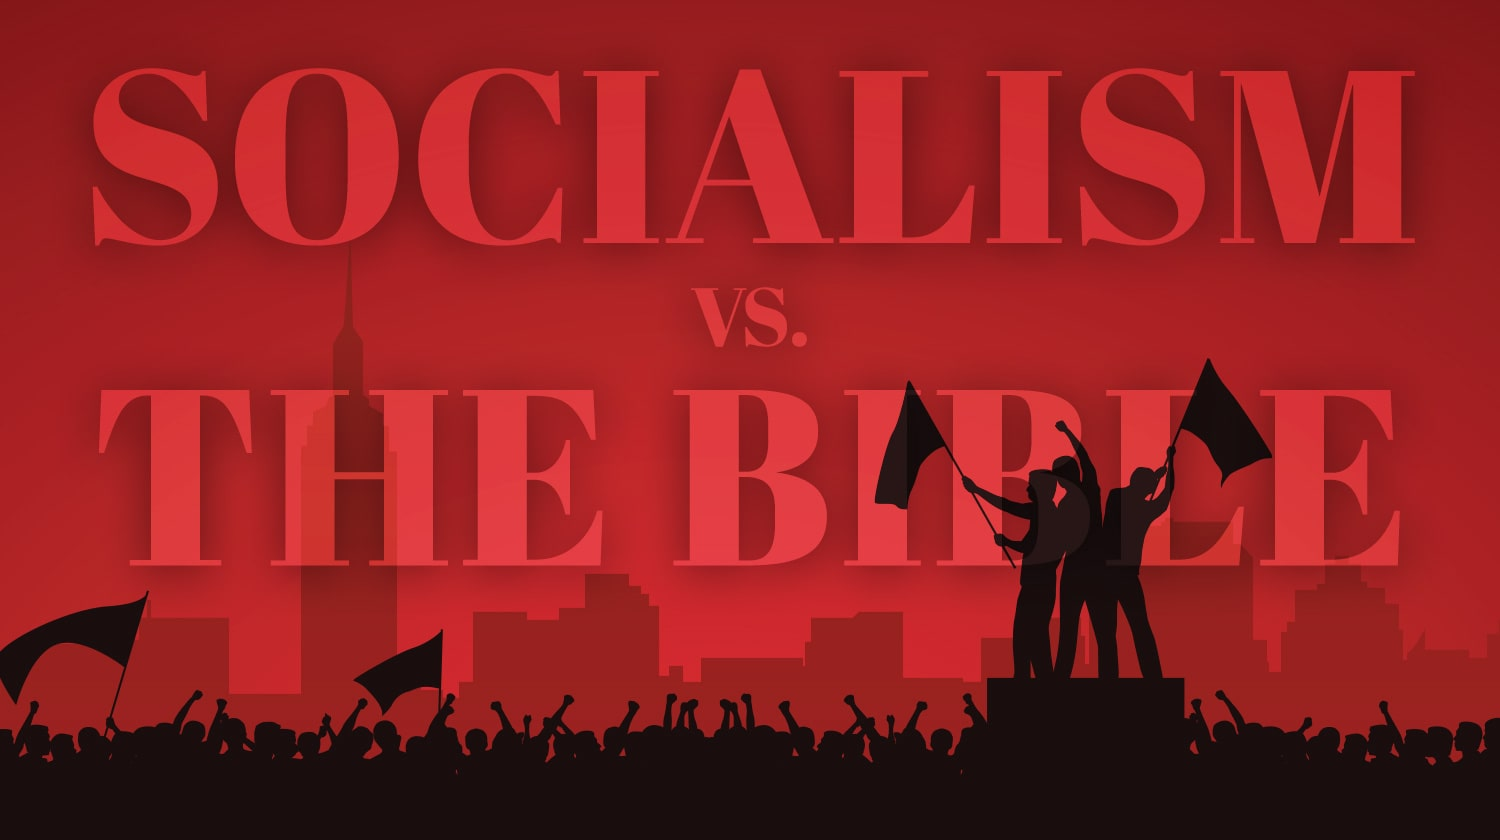 What Does the Bible Say About Socialism?